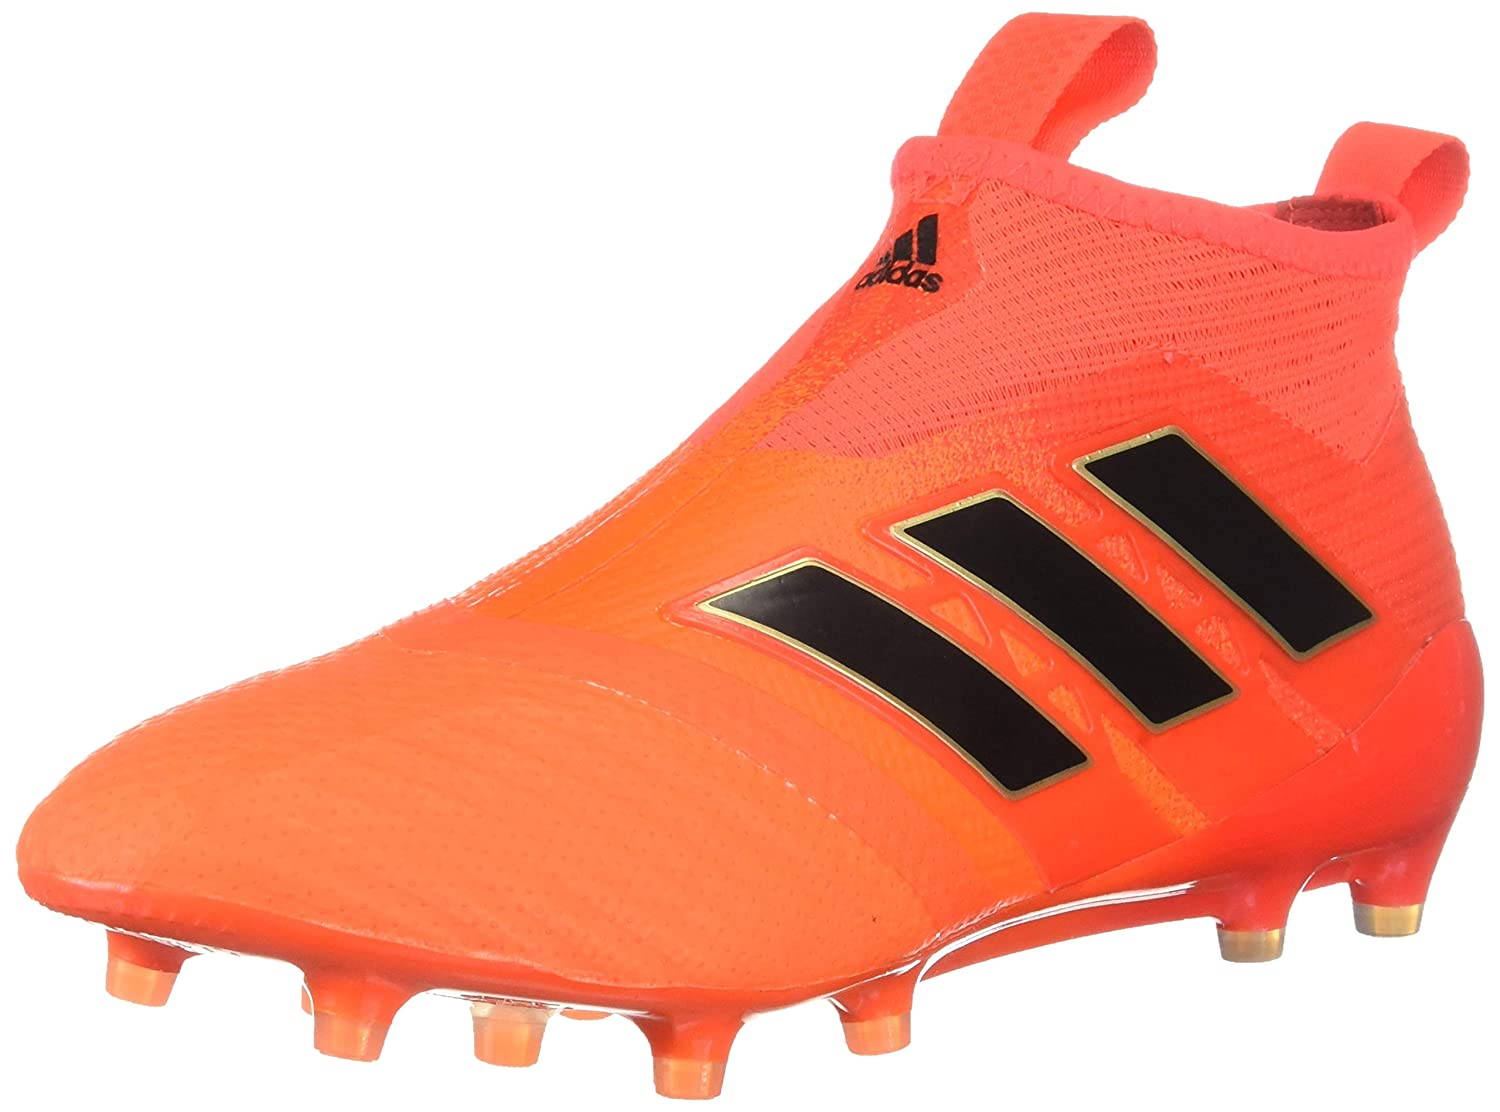 new product 5c838 feb0f adidas Men's ACE 17+ PURECONTROL FG Soccer Cleats